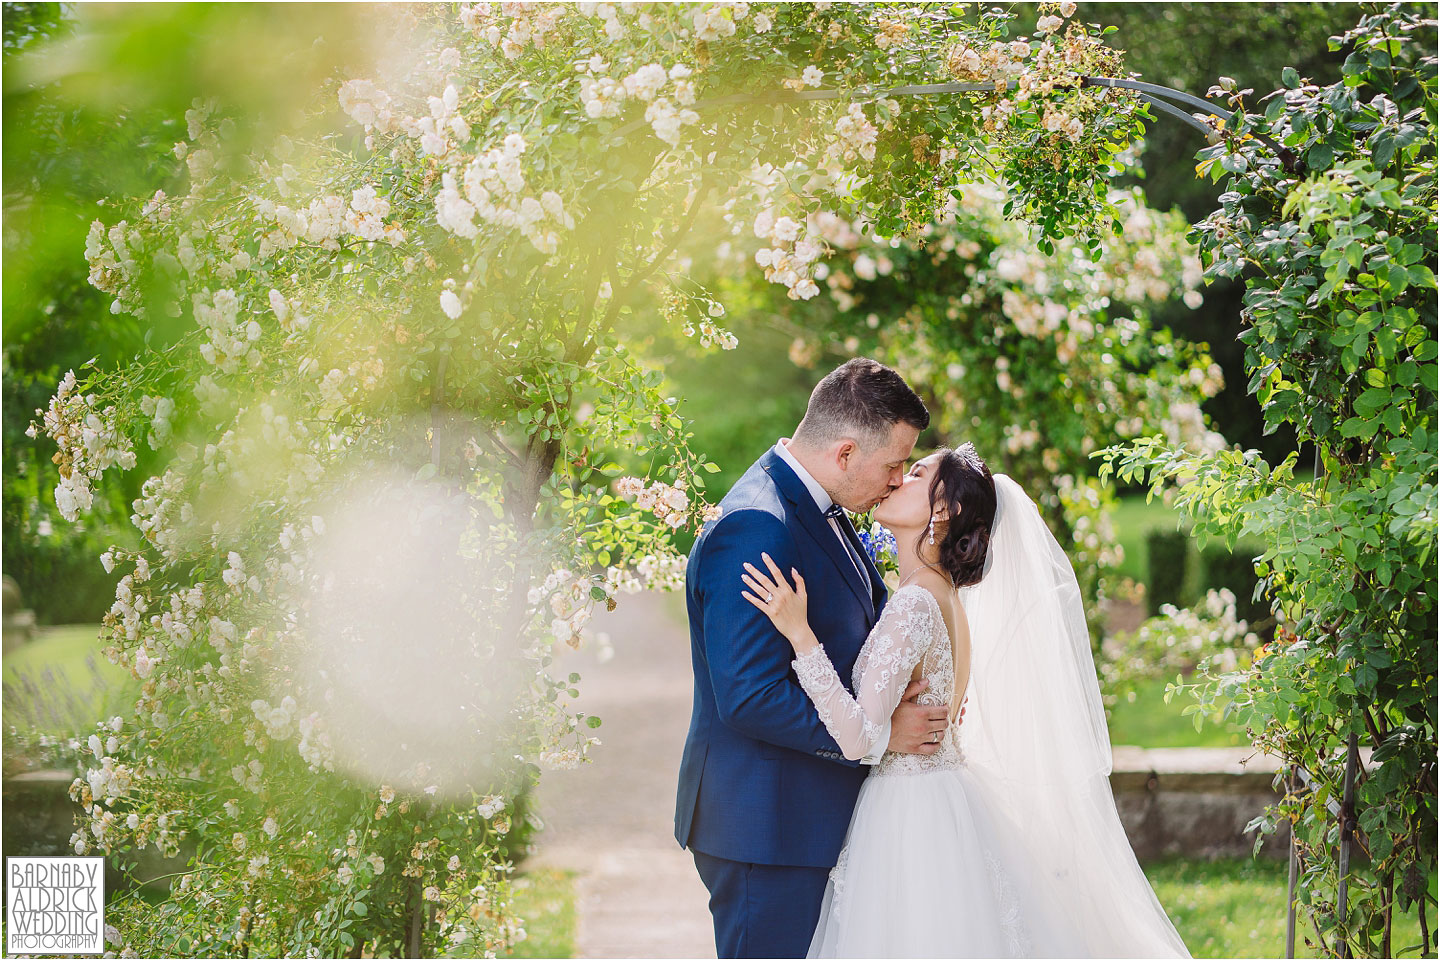 Wood Hall wetherby bride and groom kissing portrait